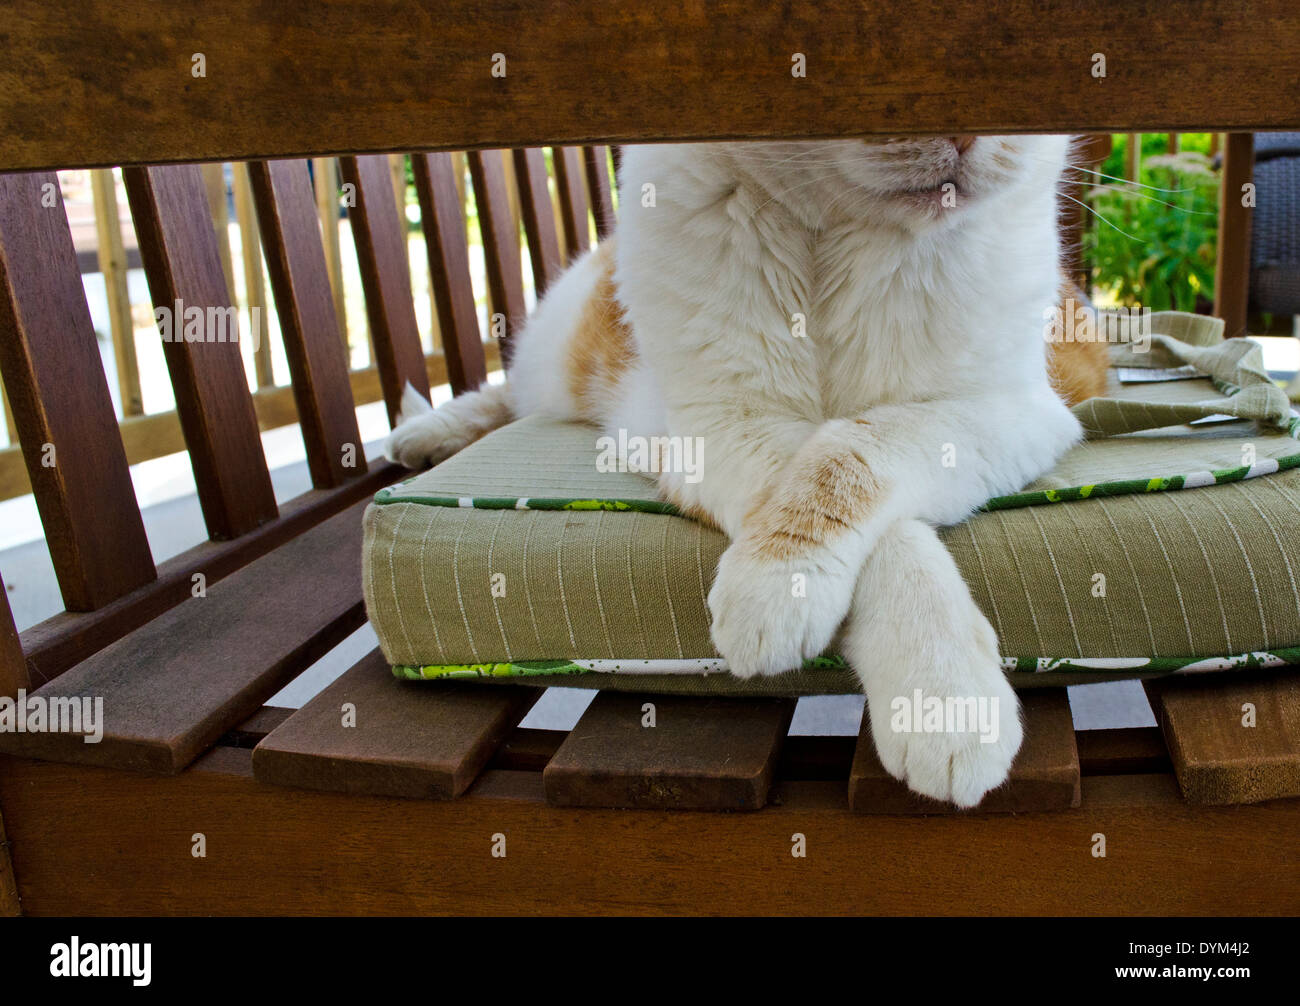 White and orange cat lounging on cushion and wood bench in the summertime.  Relaxing cat with paws crossed. - Stock Image